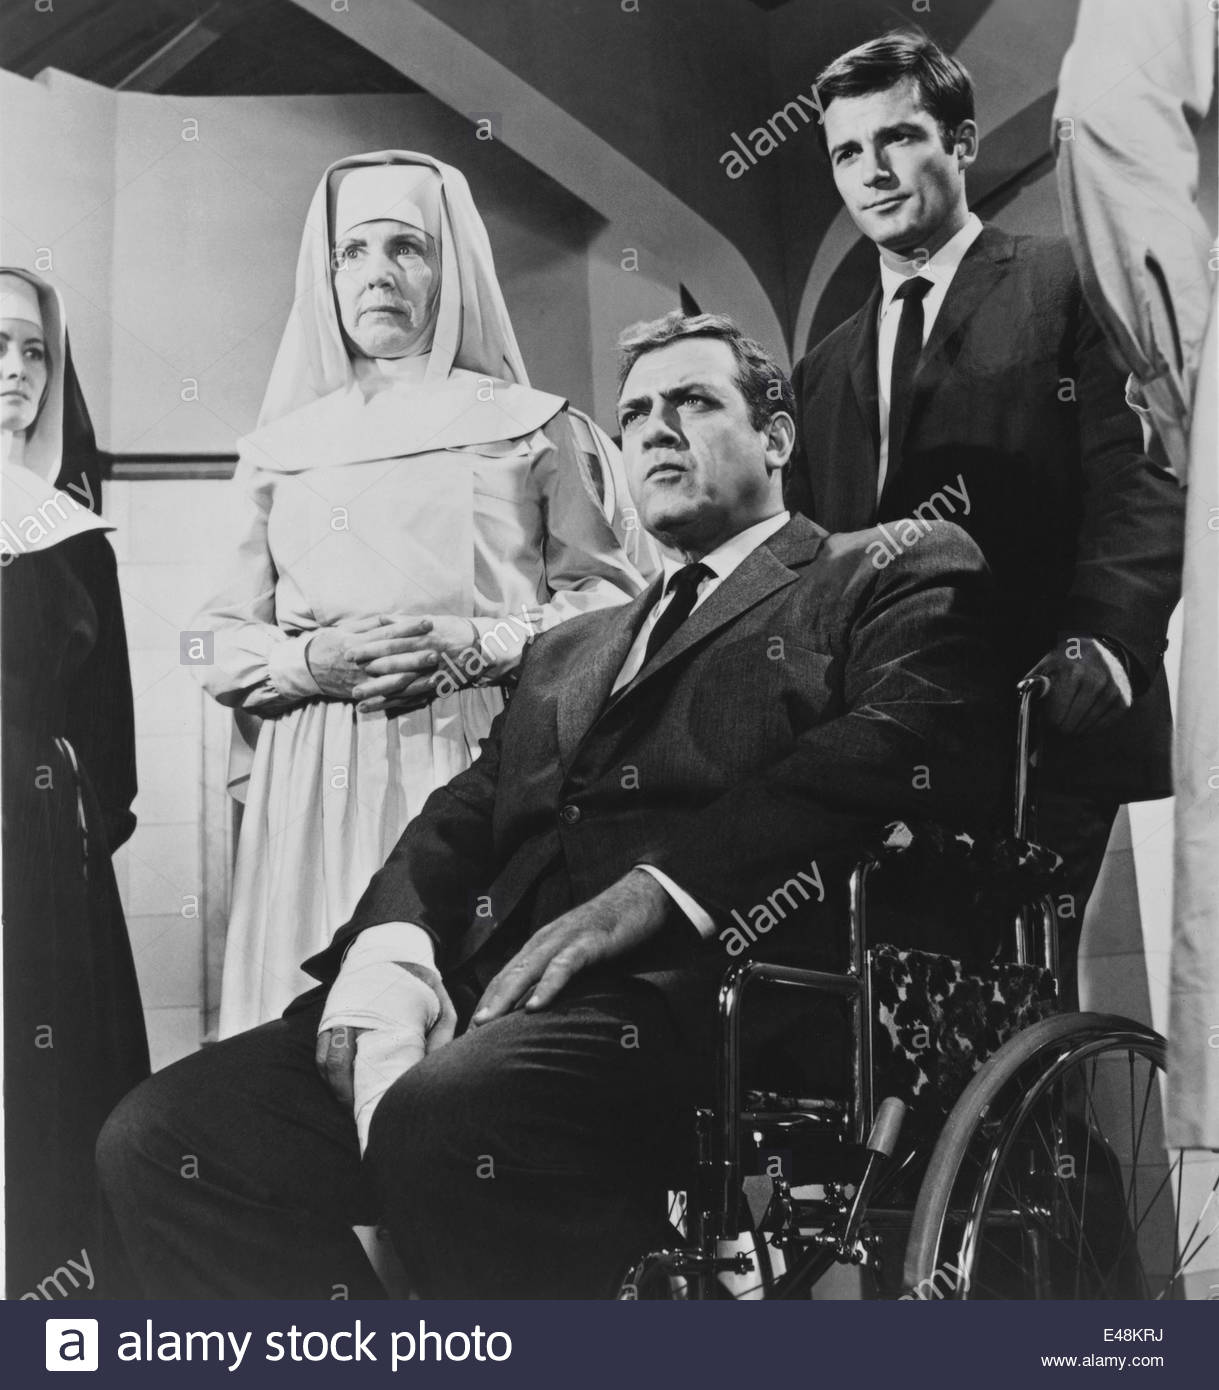 Still from IRONSIDE, which starred Raymond Burr as the  paraplegic Robert T. Ironside. Granamour Weems Collection. - Stock Image